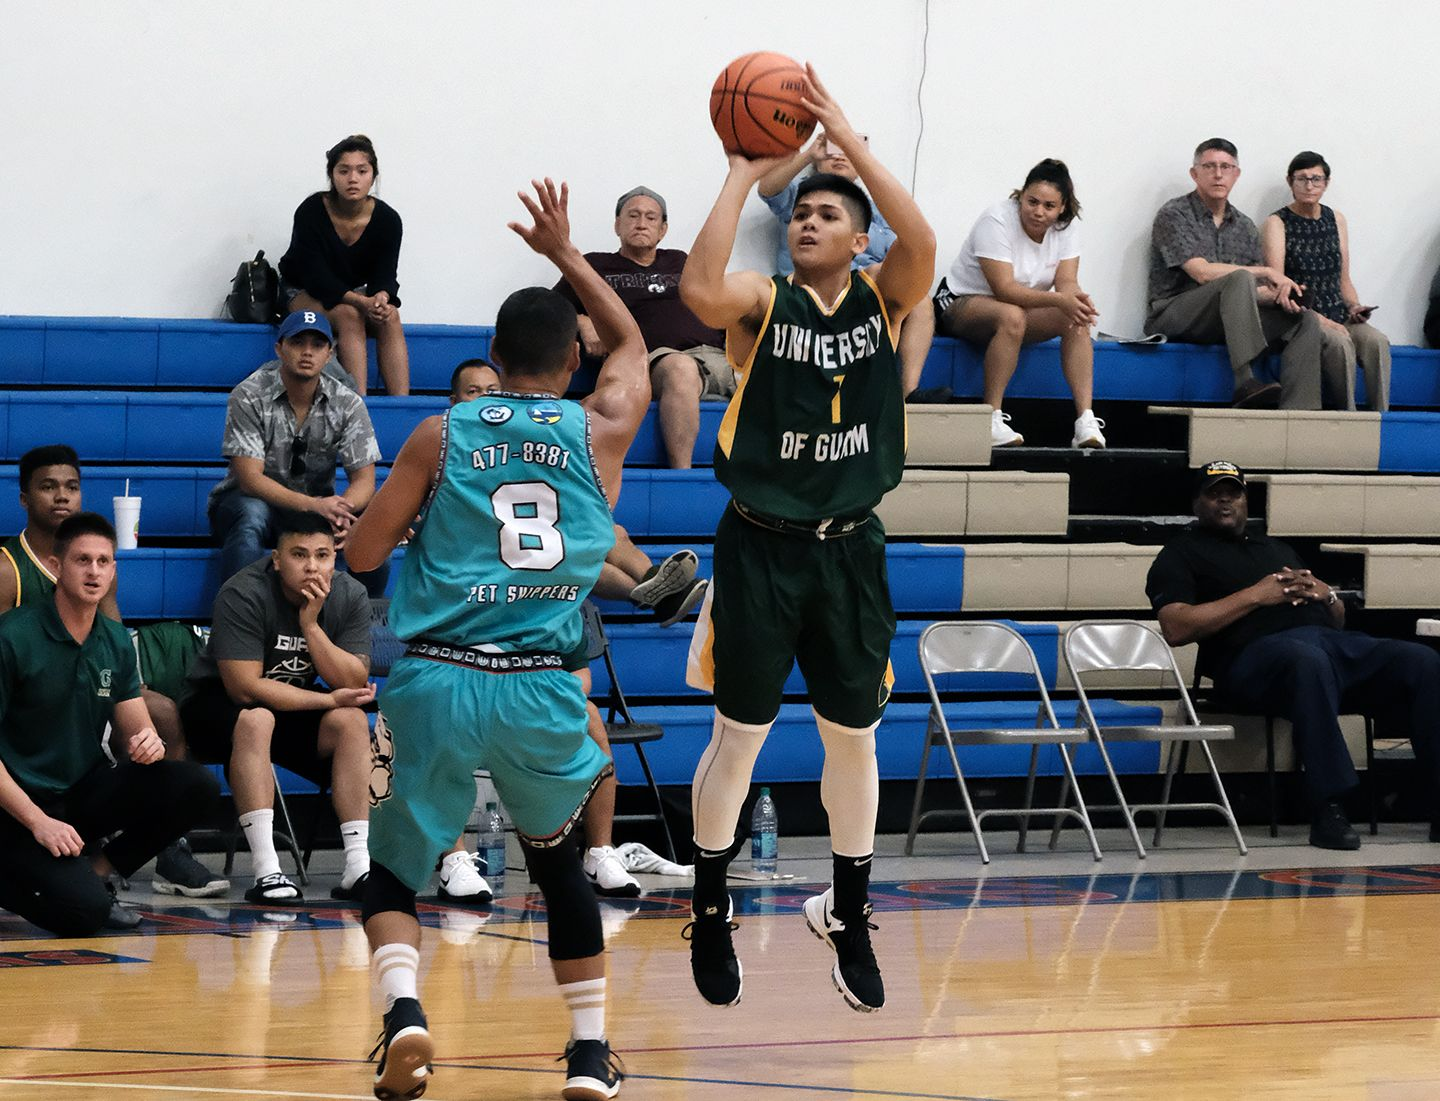 A.J. Carlos takes a shot against the Bulldogs in the previous UOG game as UOG President Thomas W. Krise and his wife, Patricia, watch in background.